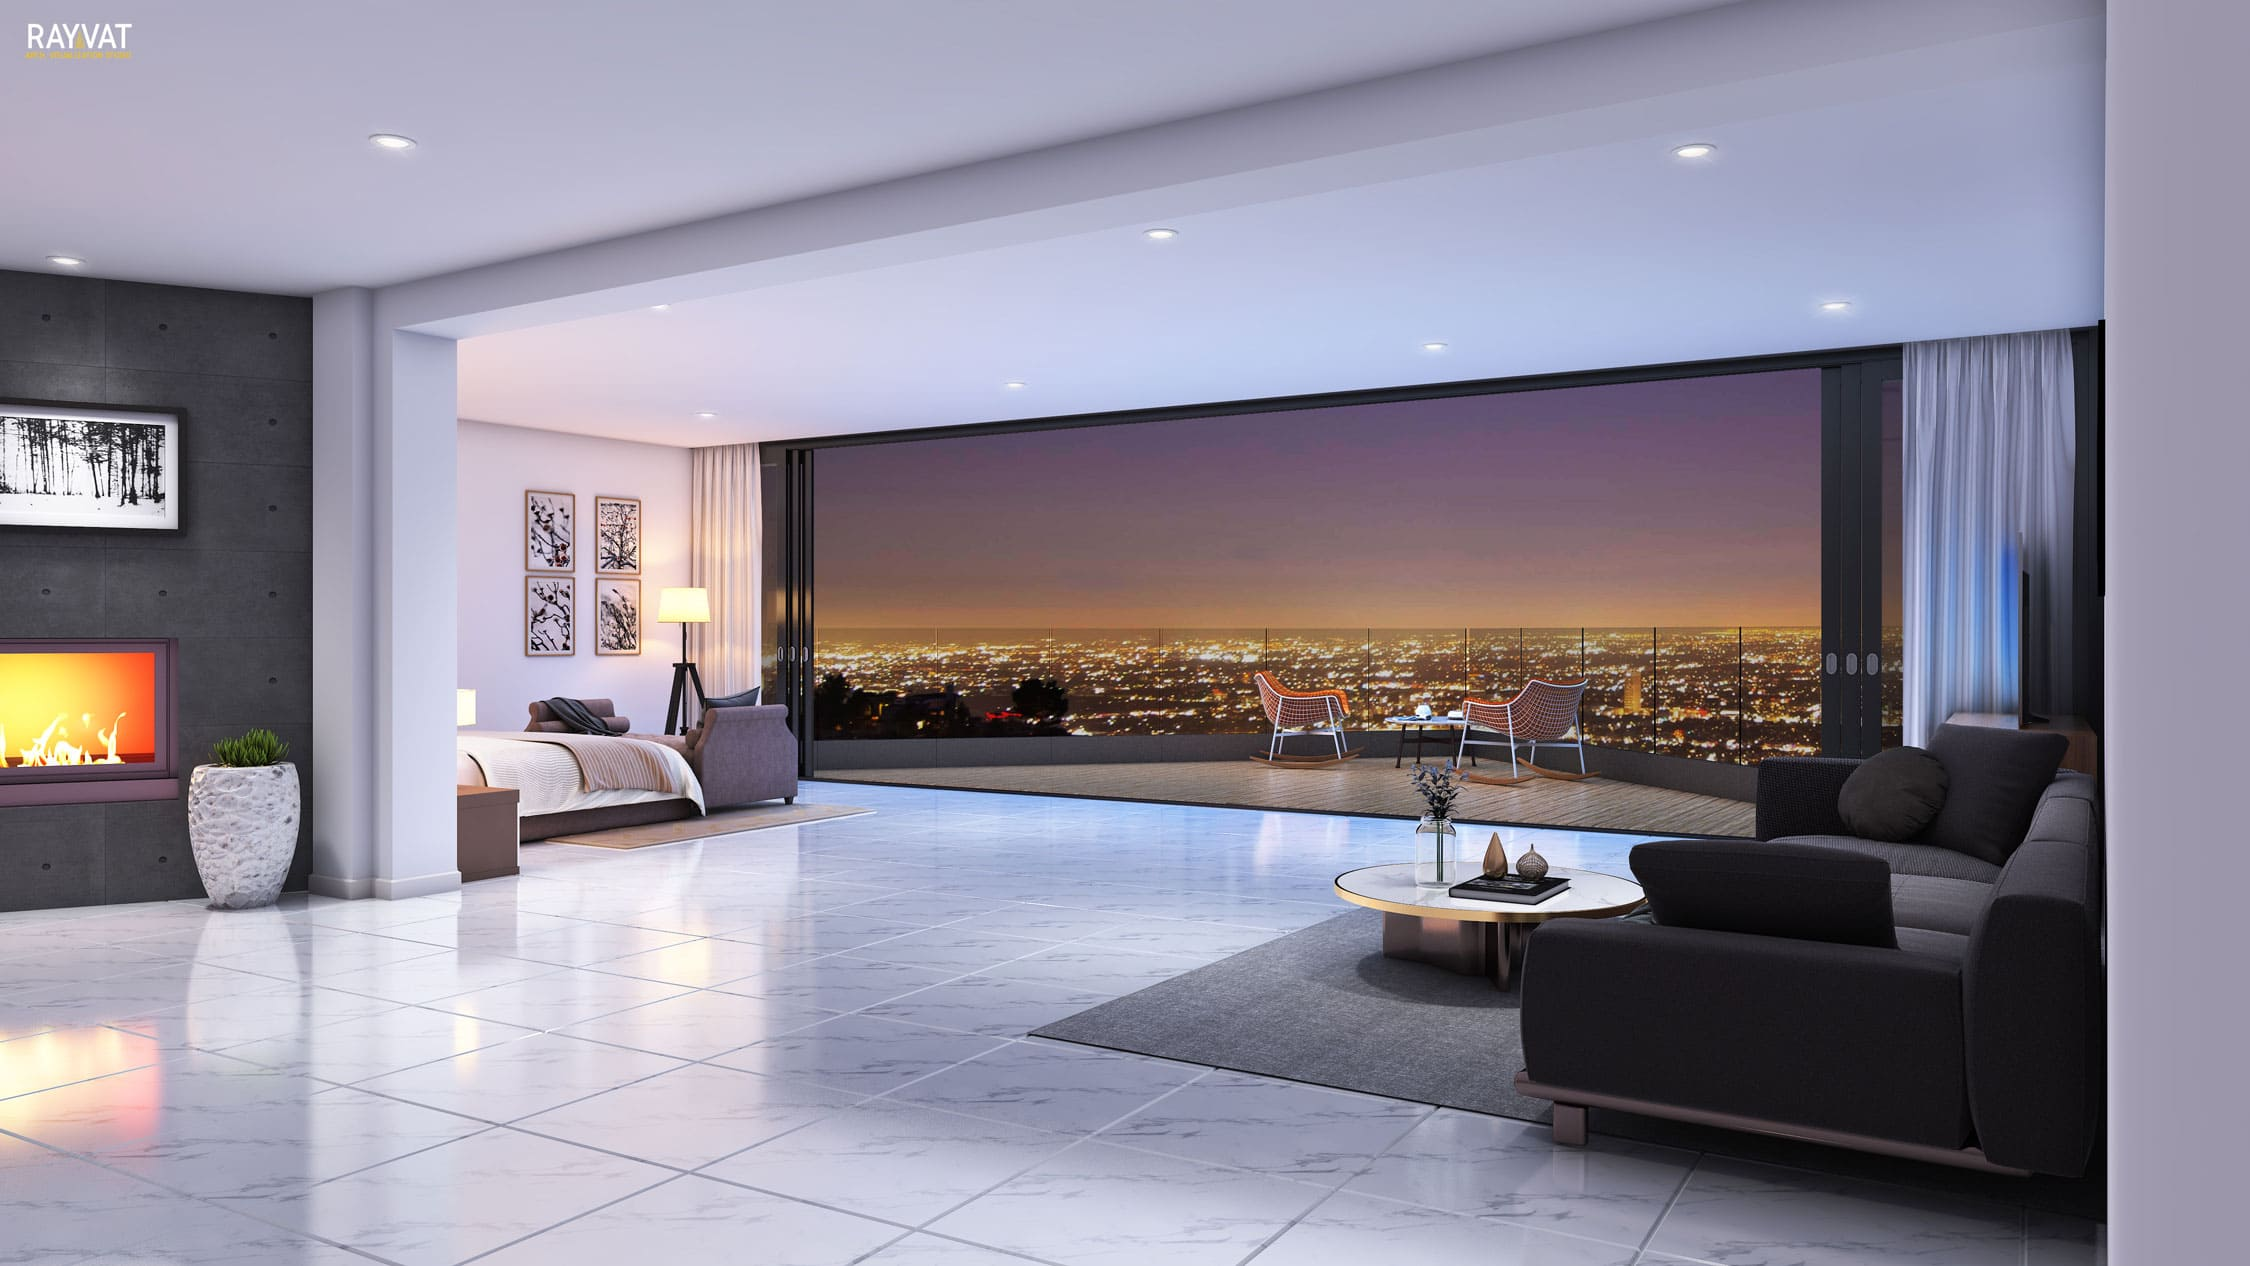 Beautiful City Night View from Bedroom, 3D Interior, Los Angeles, CA